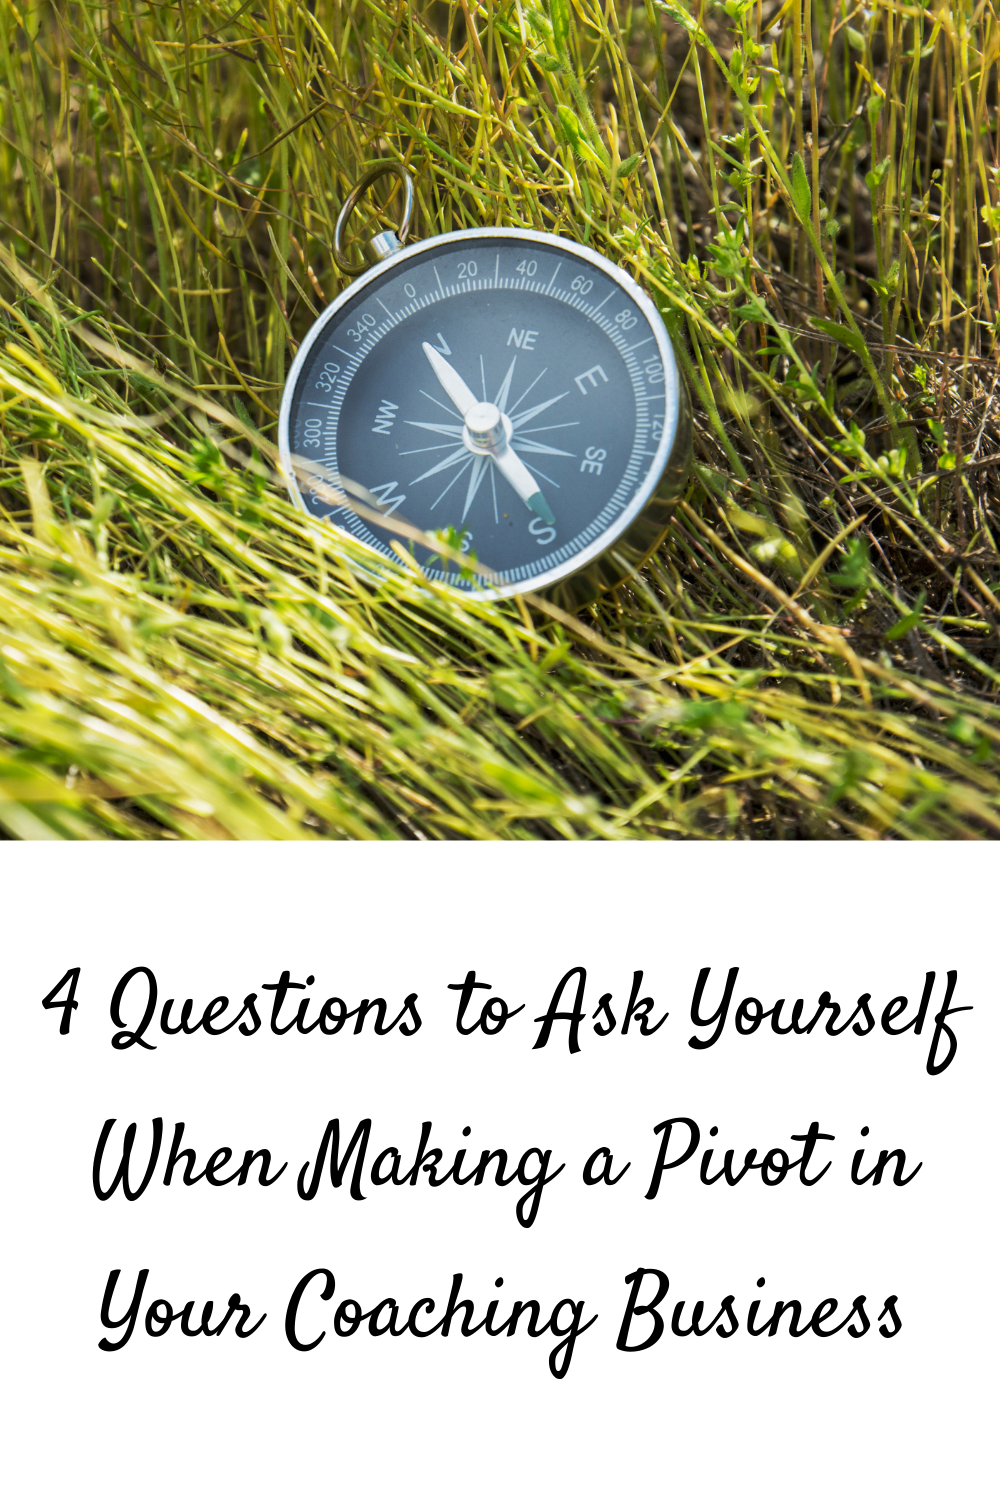 4 Questions to Ask Yourself When Making a Pivot in Your Coaching Business